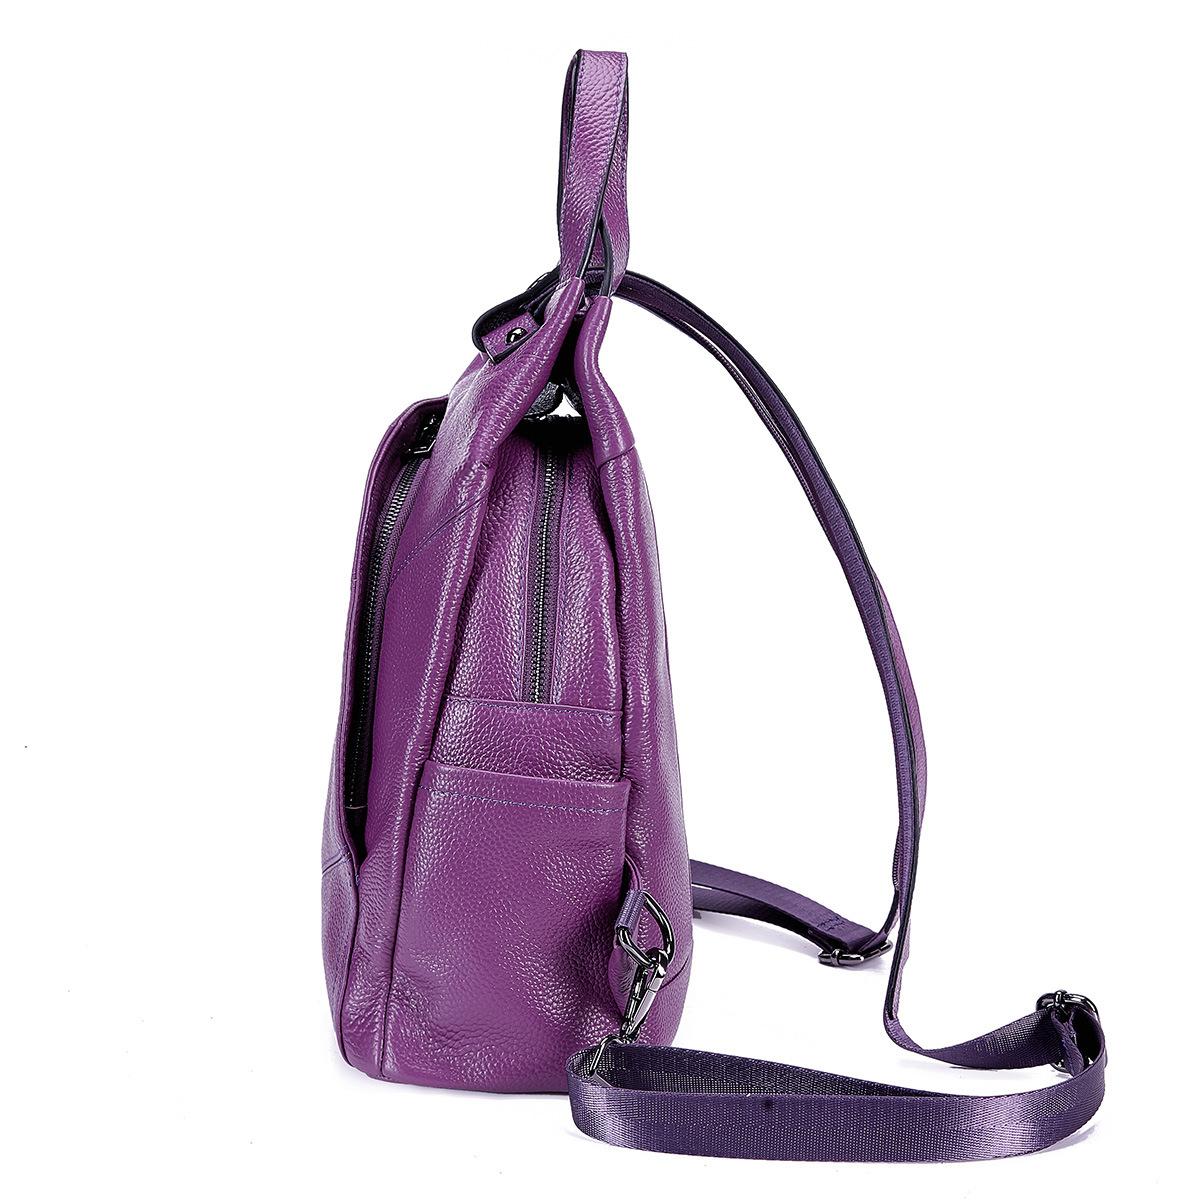 BONAMIE Purple Genuine Leather Backpack Women Brand School Backpack Real Leather Female Mochila Shoulder Bags For Teenage Girls-in Backpacks from Luggage & Bags    2